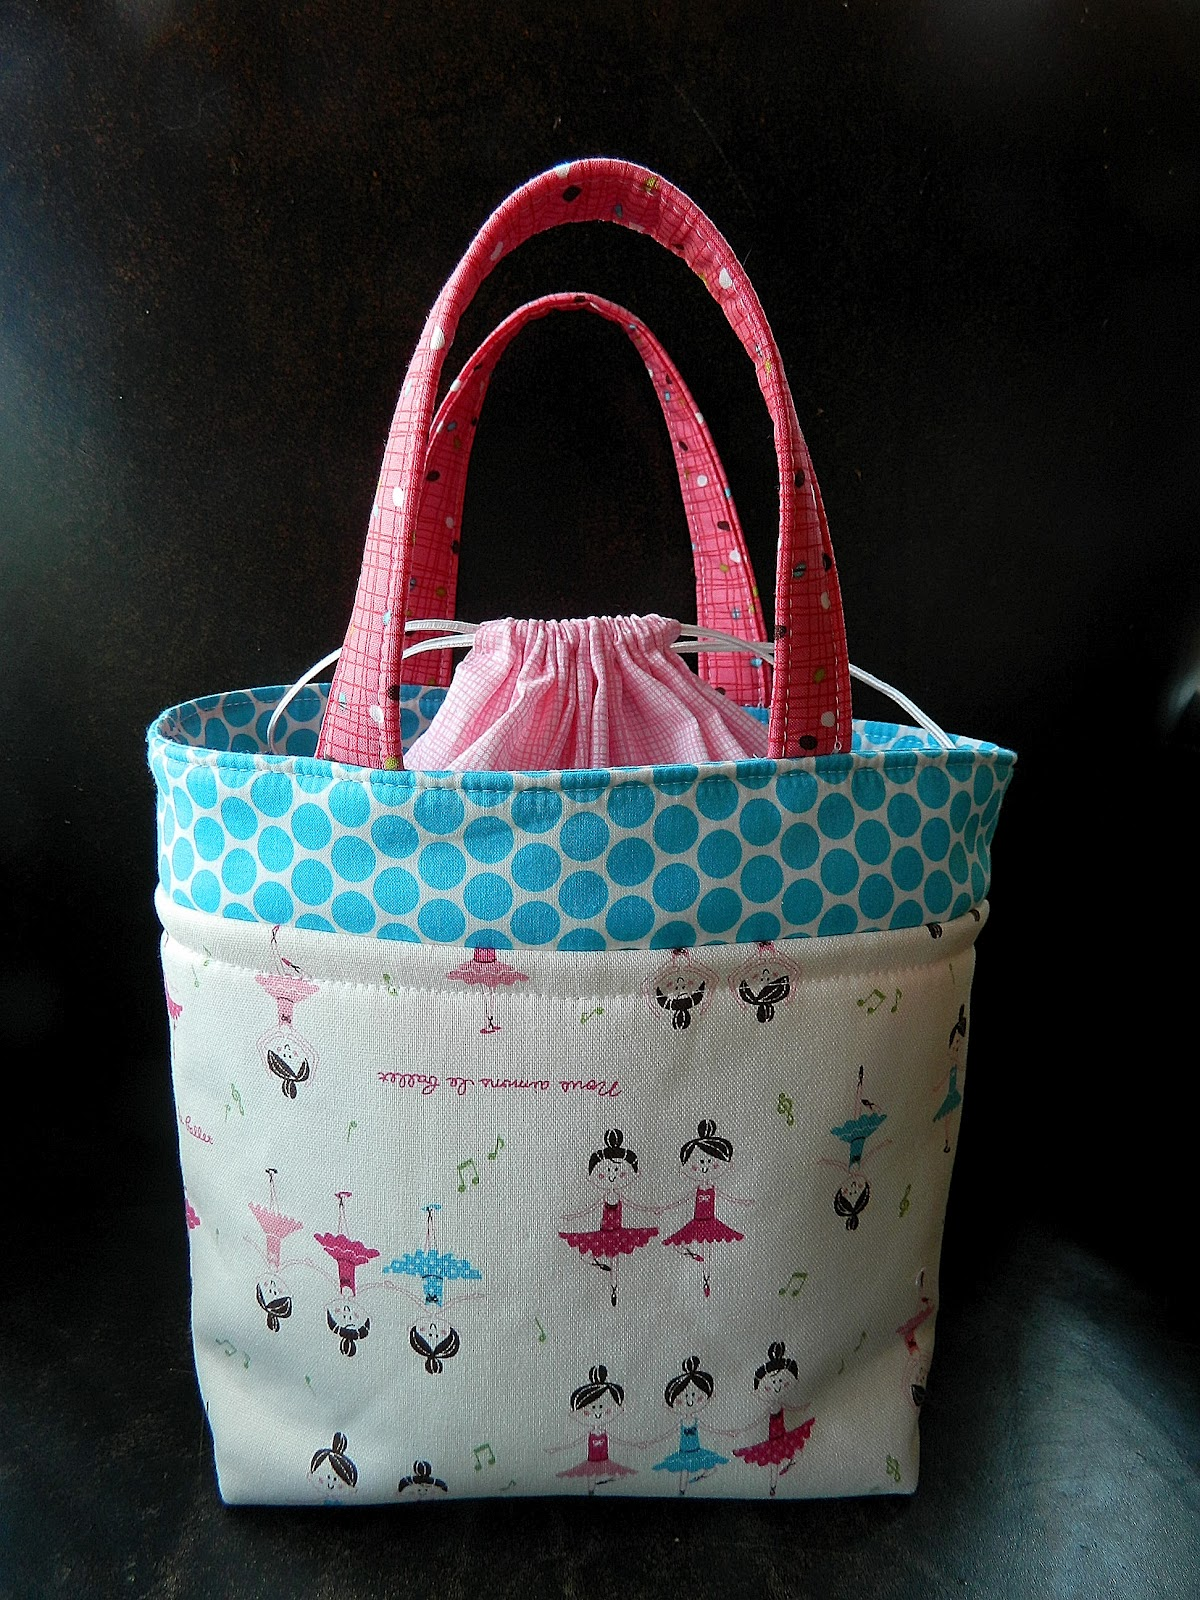 Excellent monkey beans: Ballet Bag for Bailey UL88